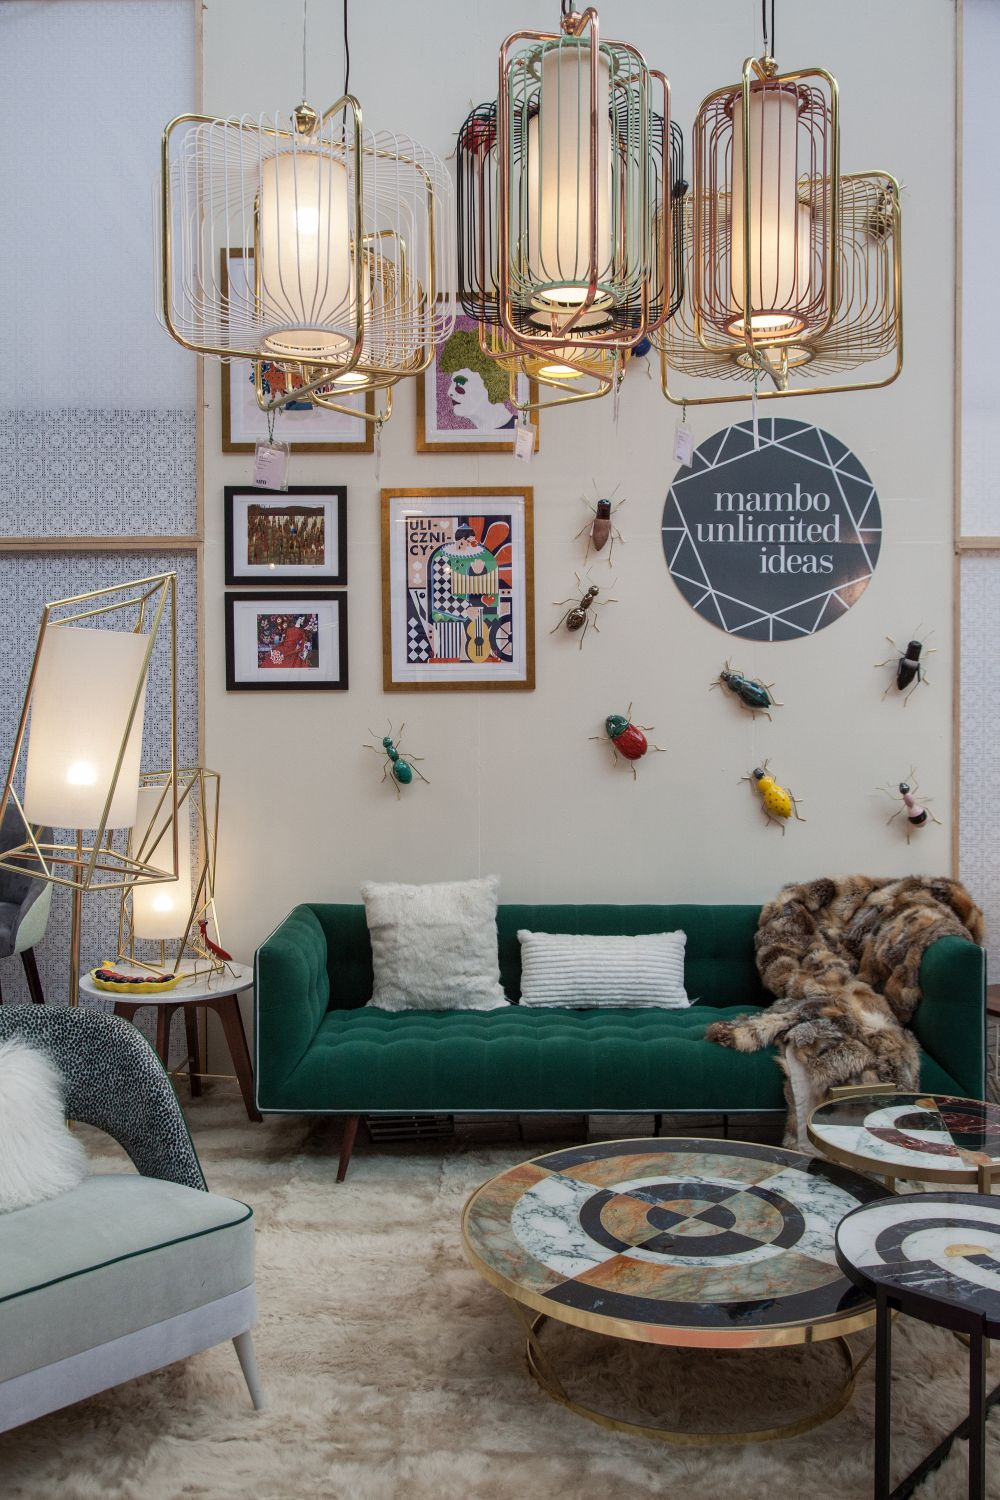 fun wall designs to turn a blank space into a terrific decor element - Fun Wall Designs To Turn a Blank Space into a Terrific Decor Element